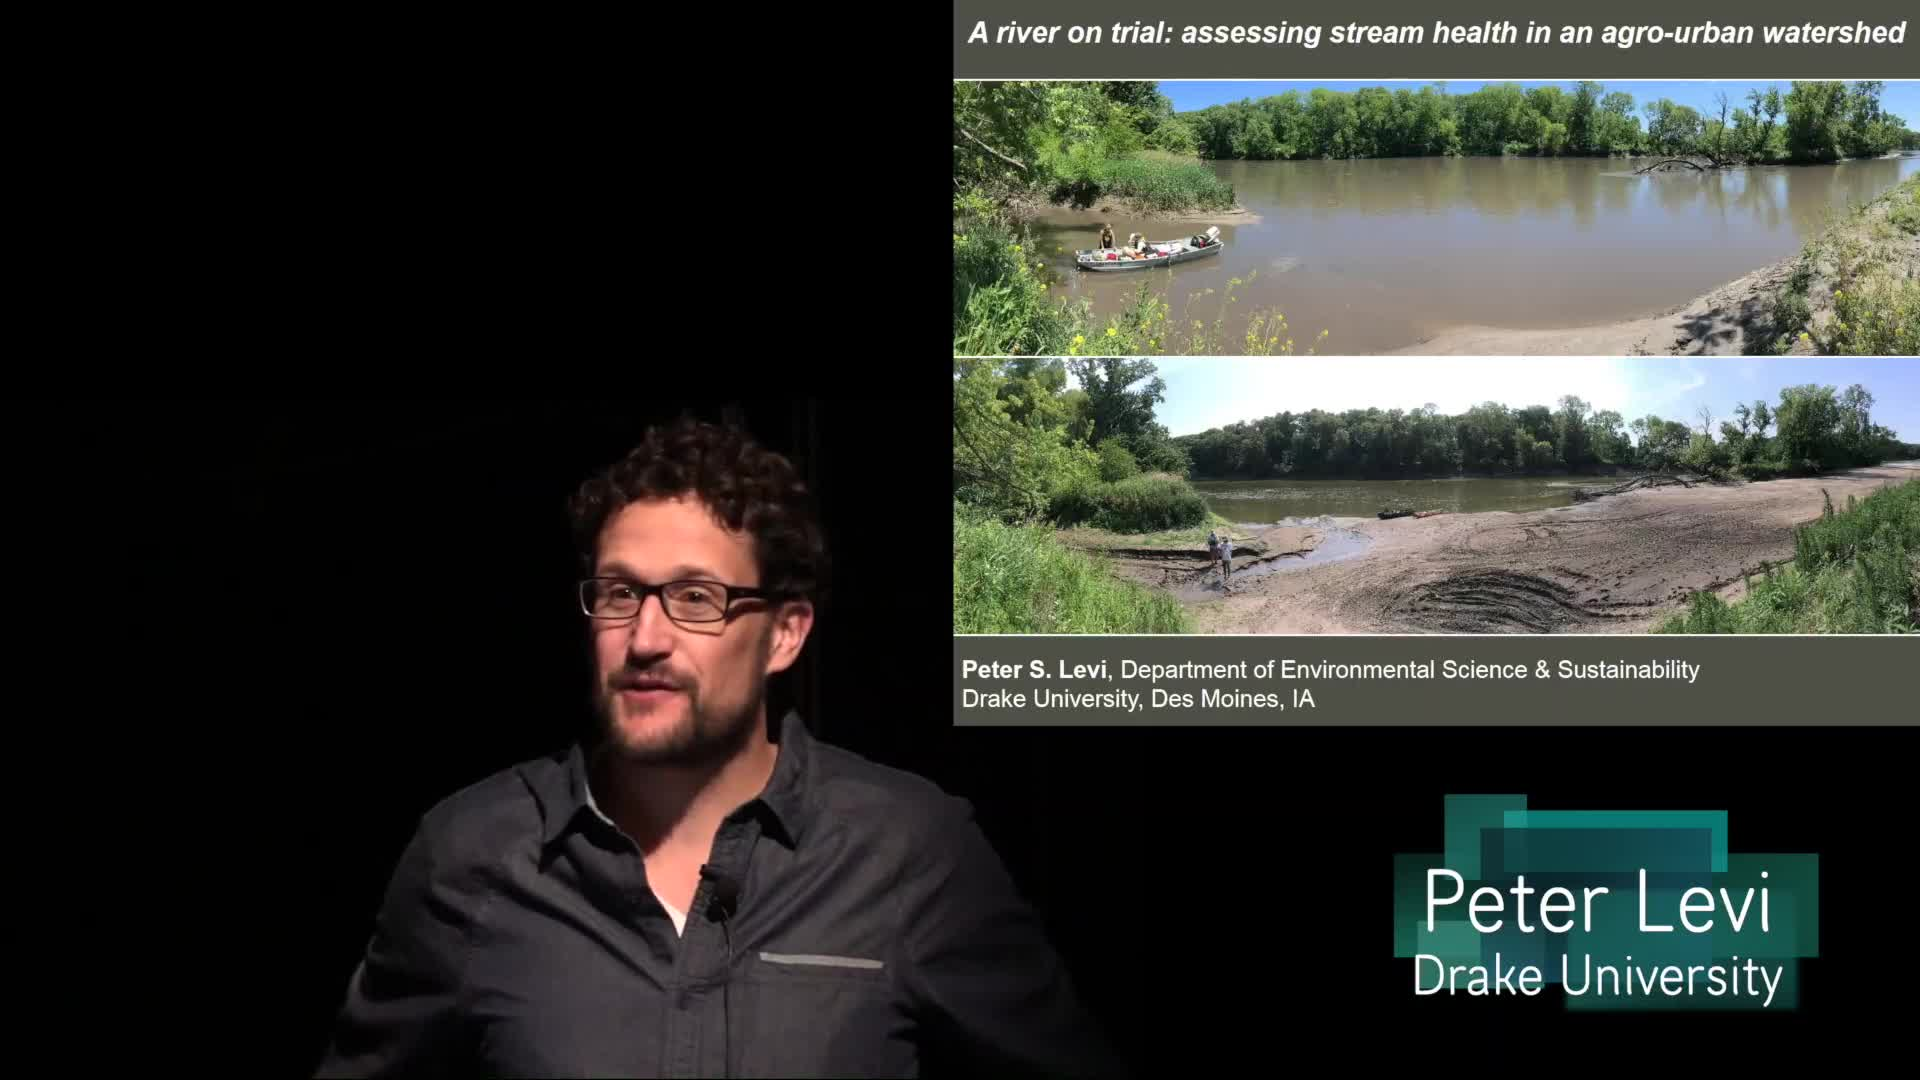 A river on trial: Assessing stream health in an agro-urban landscape